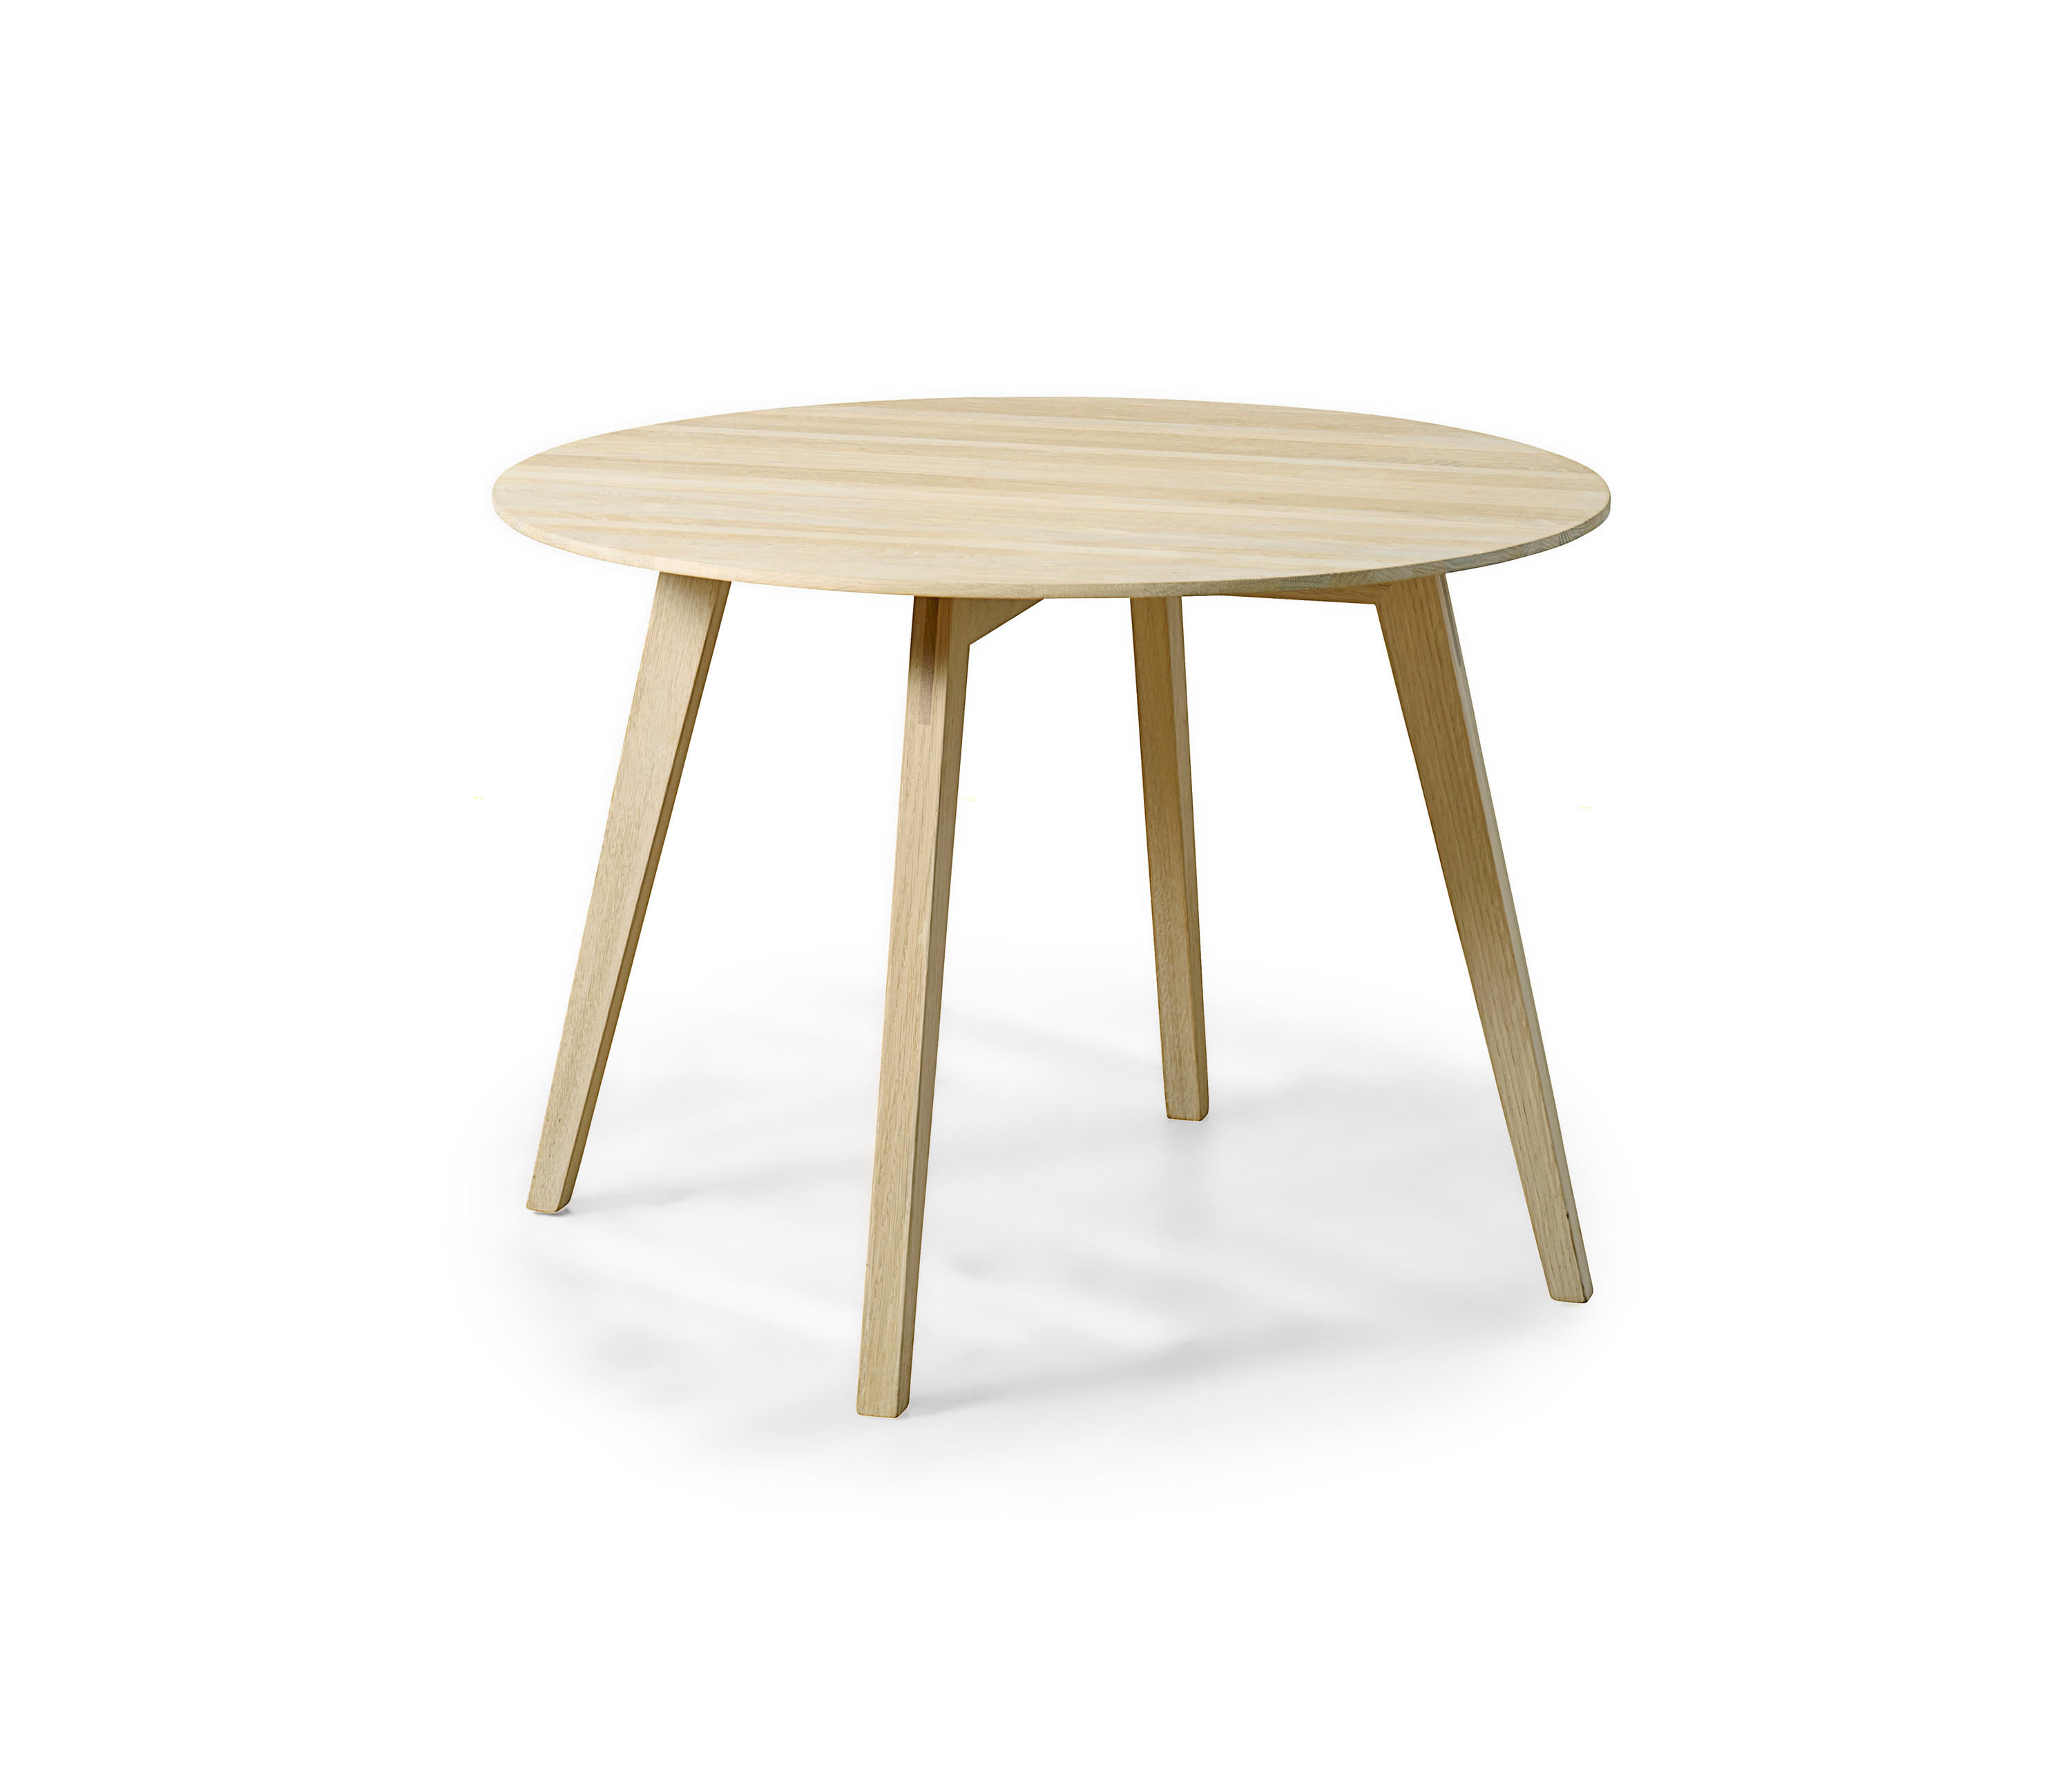 Circle Coffee Table By Getama Danmark | Coffee Tables ...